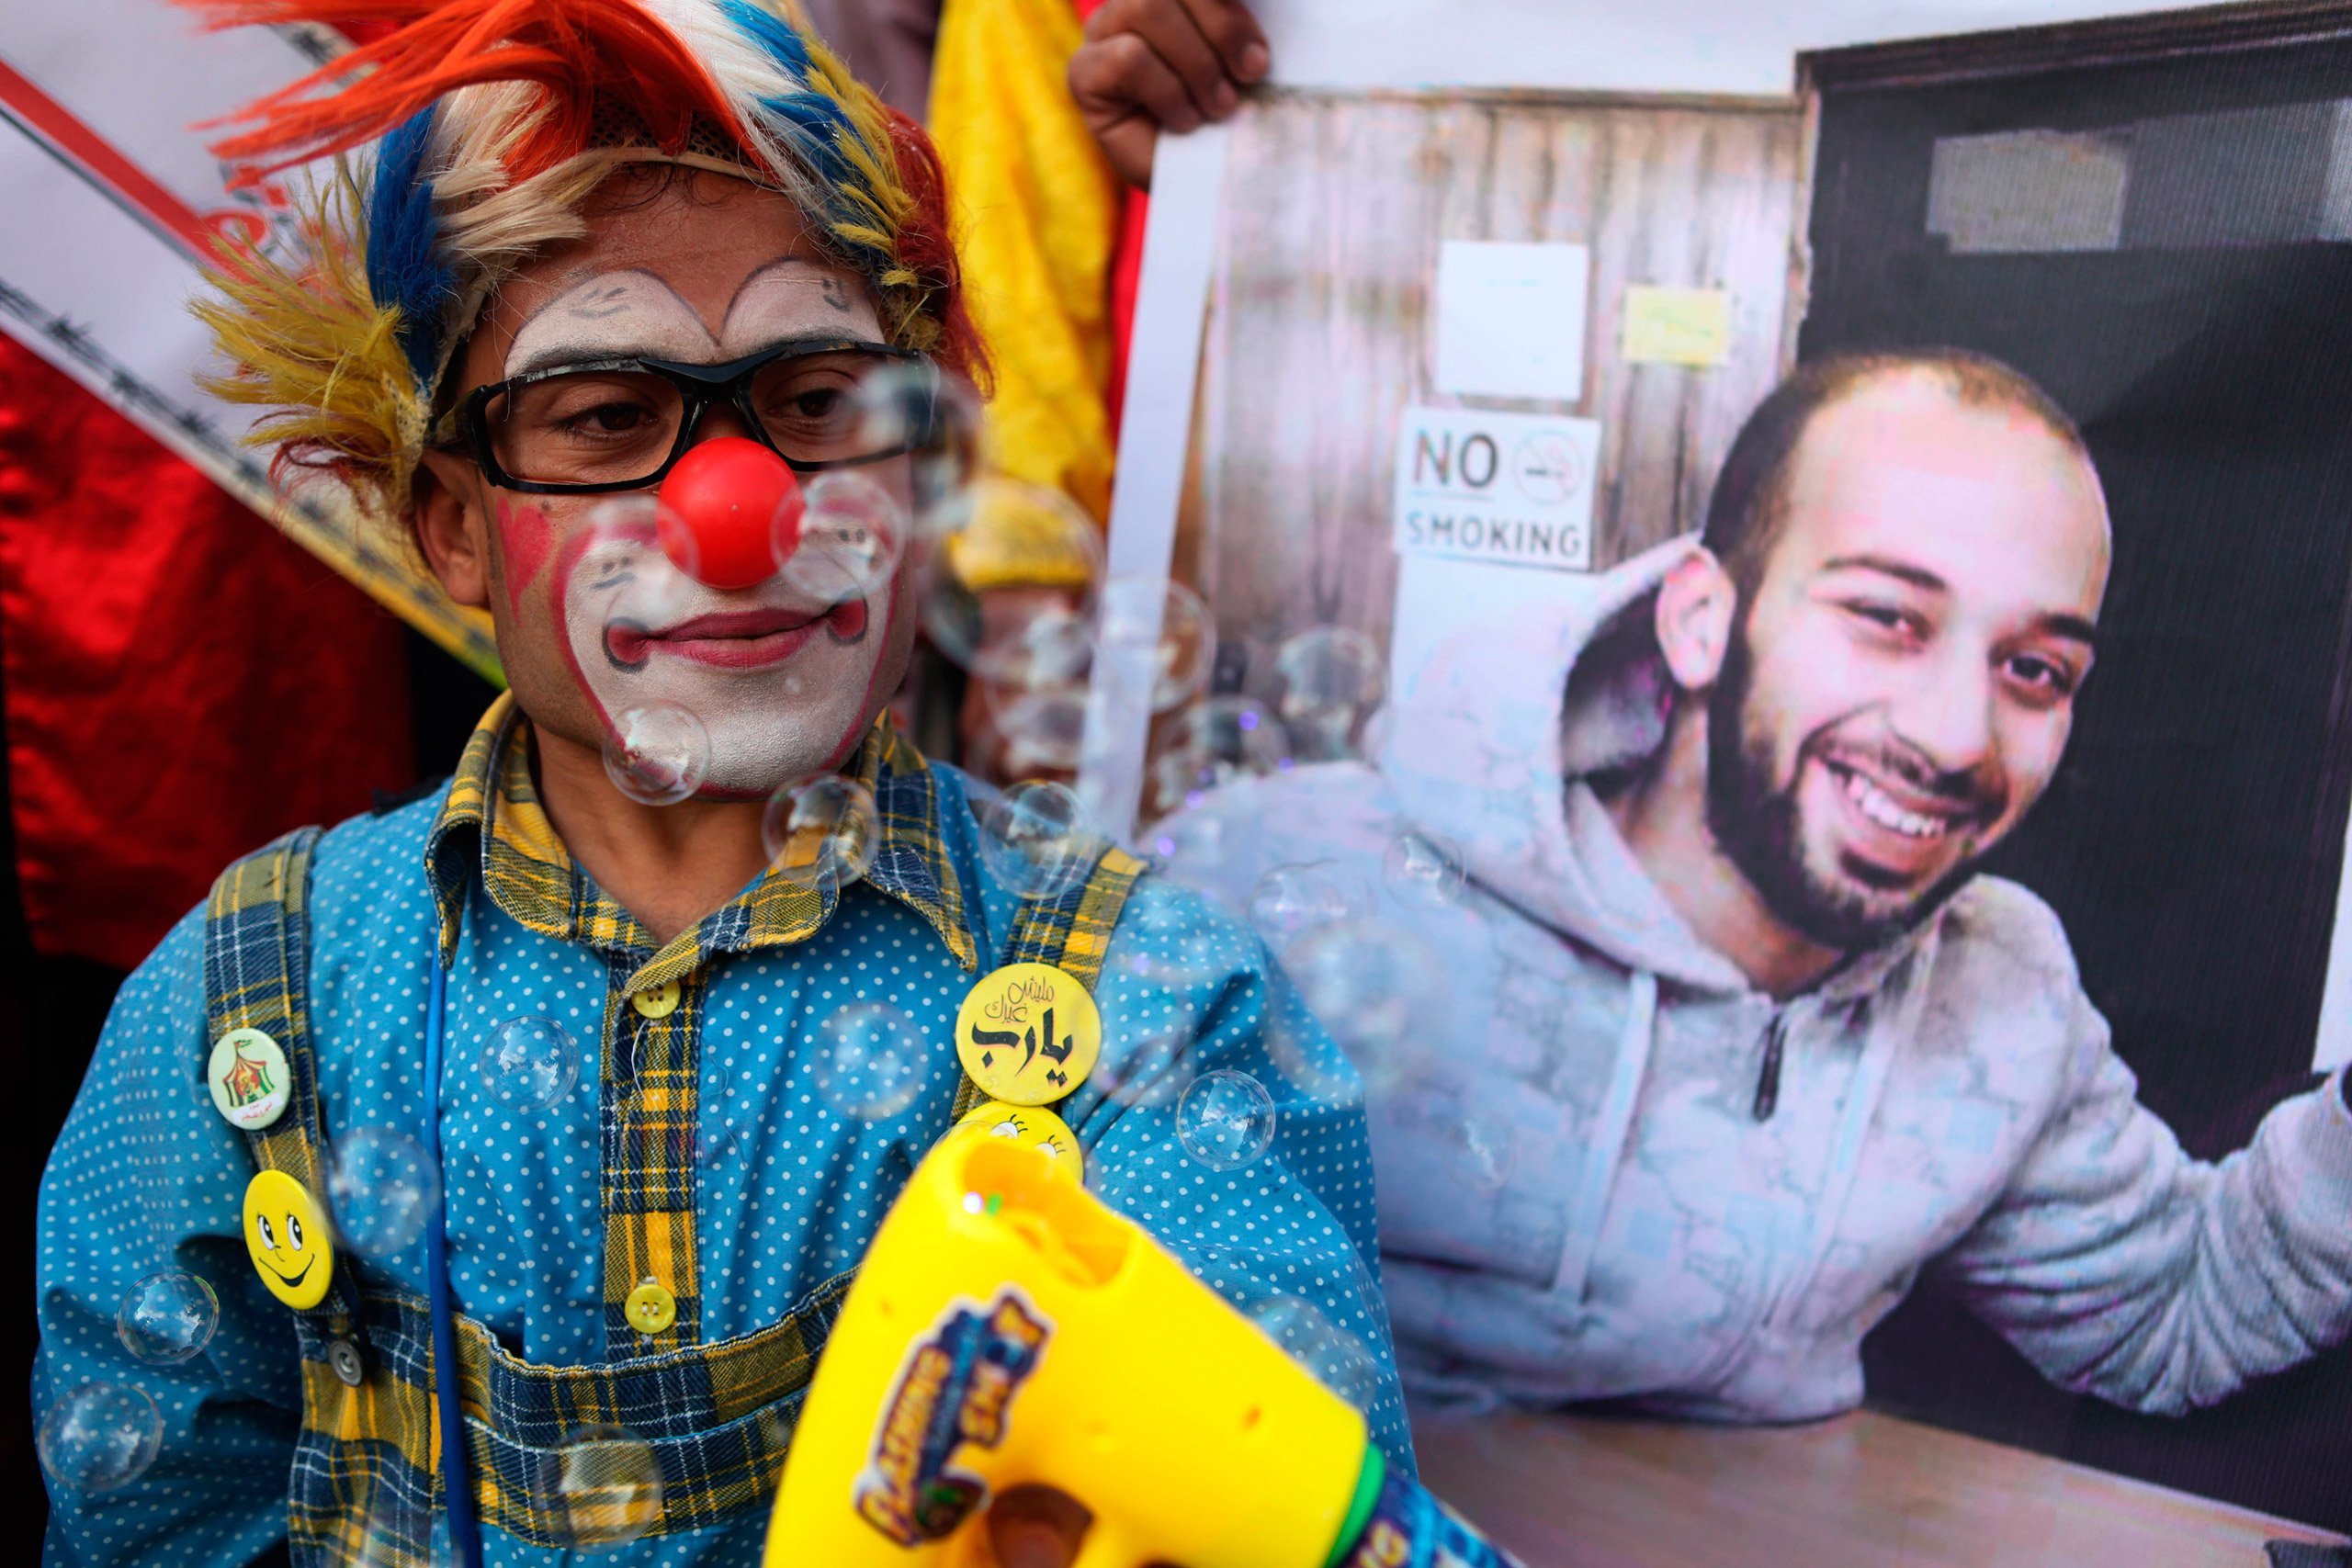 Palestinians clowns during a show of solidarity for their colleague, Mohammed Abu Sakha, who was jailed by Israel in December, in front of the Red Cross office in Gaza City, Feb. 8, 2016.